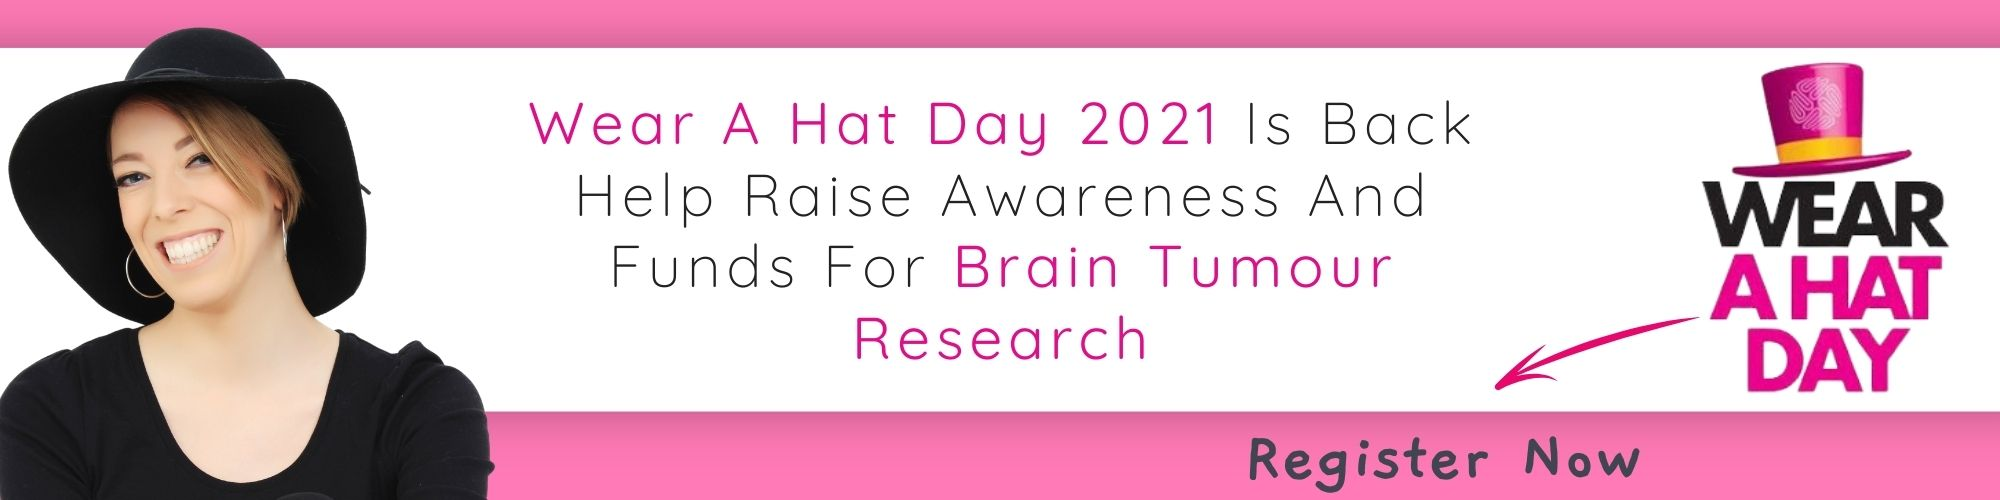 Grab your favourite hat and raise funds to bring us closer to a cure for brain tumours